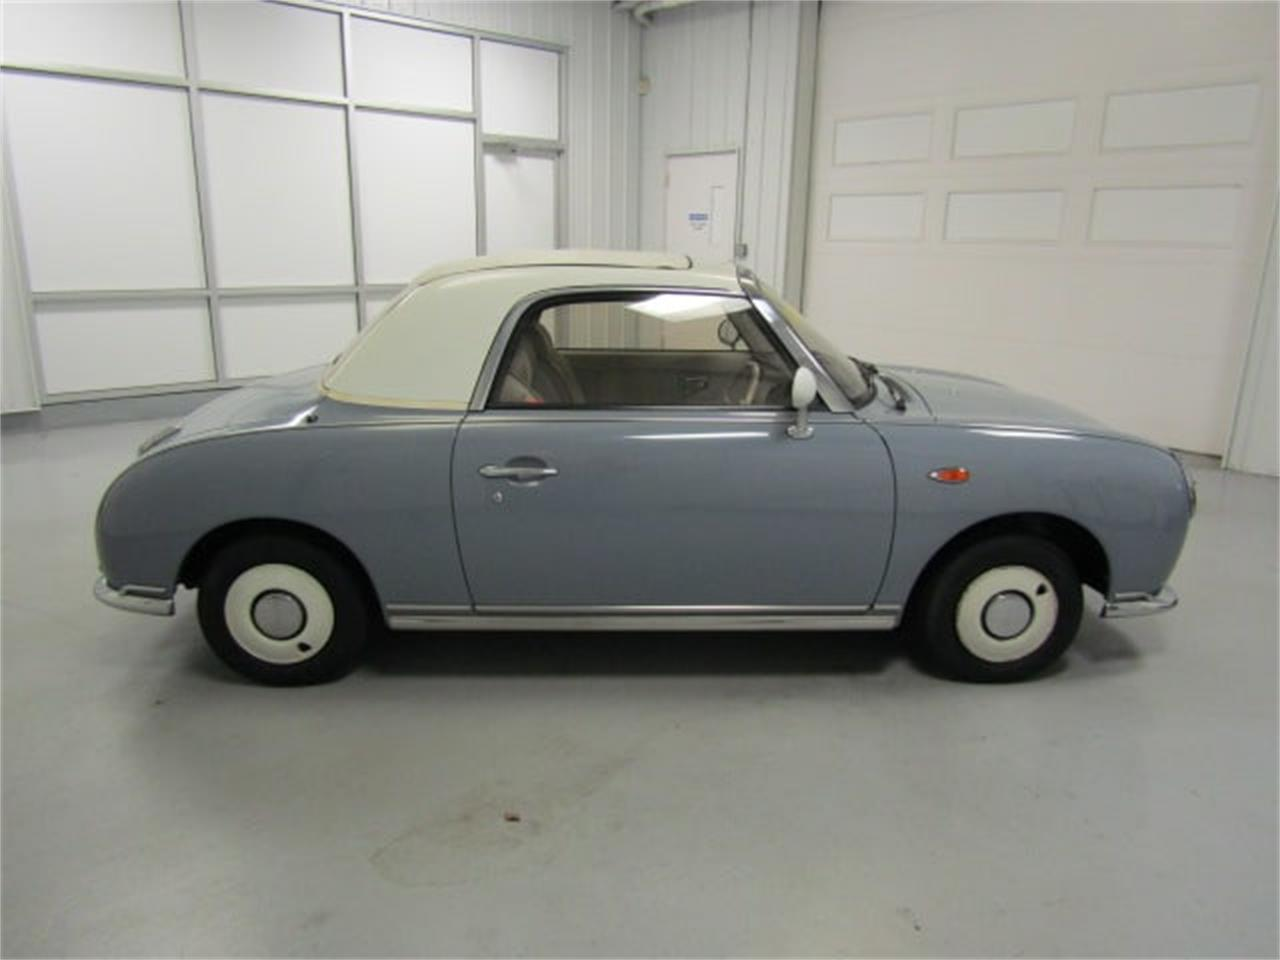 Large Picture of 1991 Nissan Figaro located in Christiansburg Virginia - $10,900.00 Offered by Duncan Imports & Classic Cars - JZ1Z